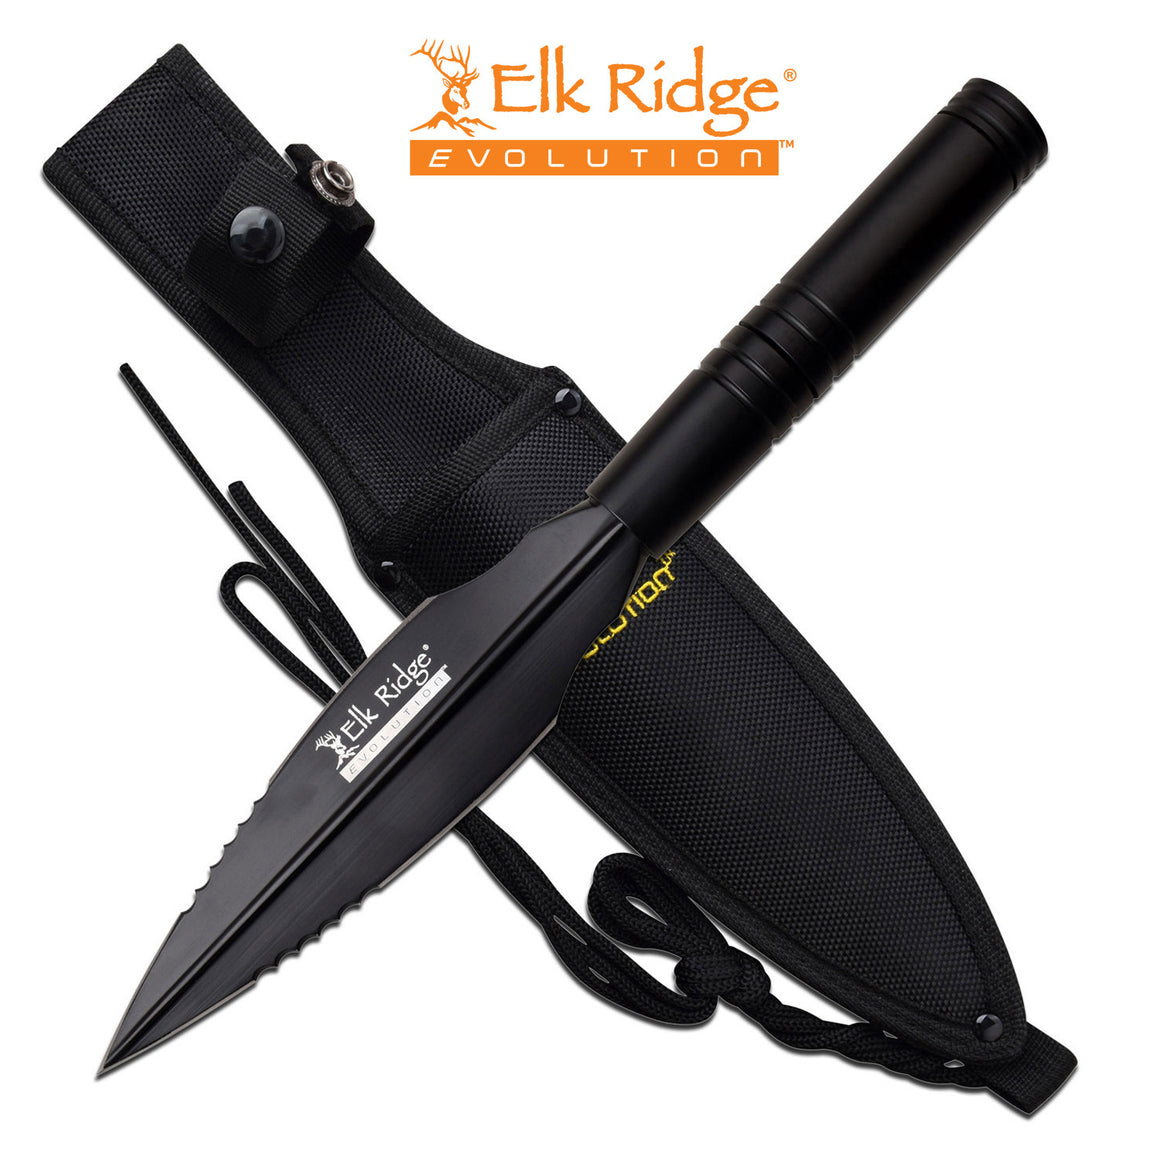 Elk Ridge Evolution ERE-SP001-BK Spear / Fixed Blade Knife